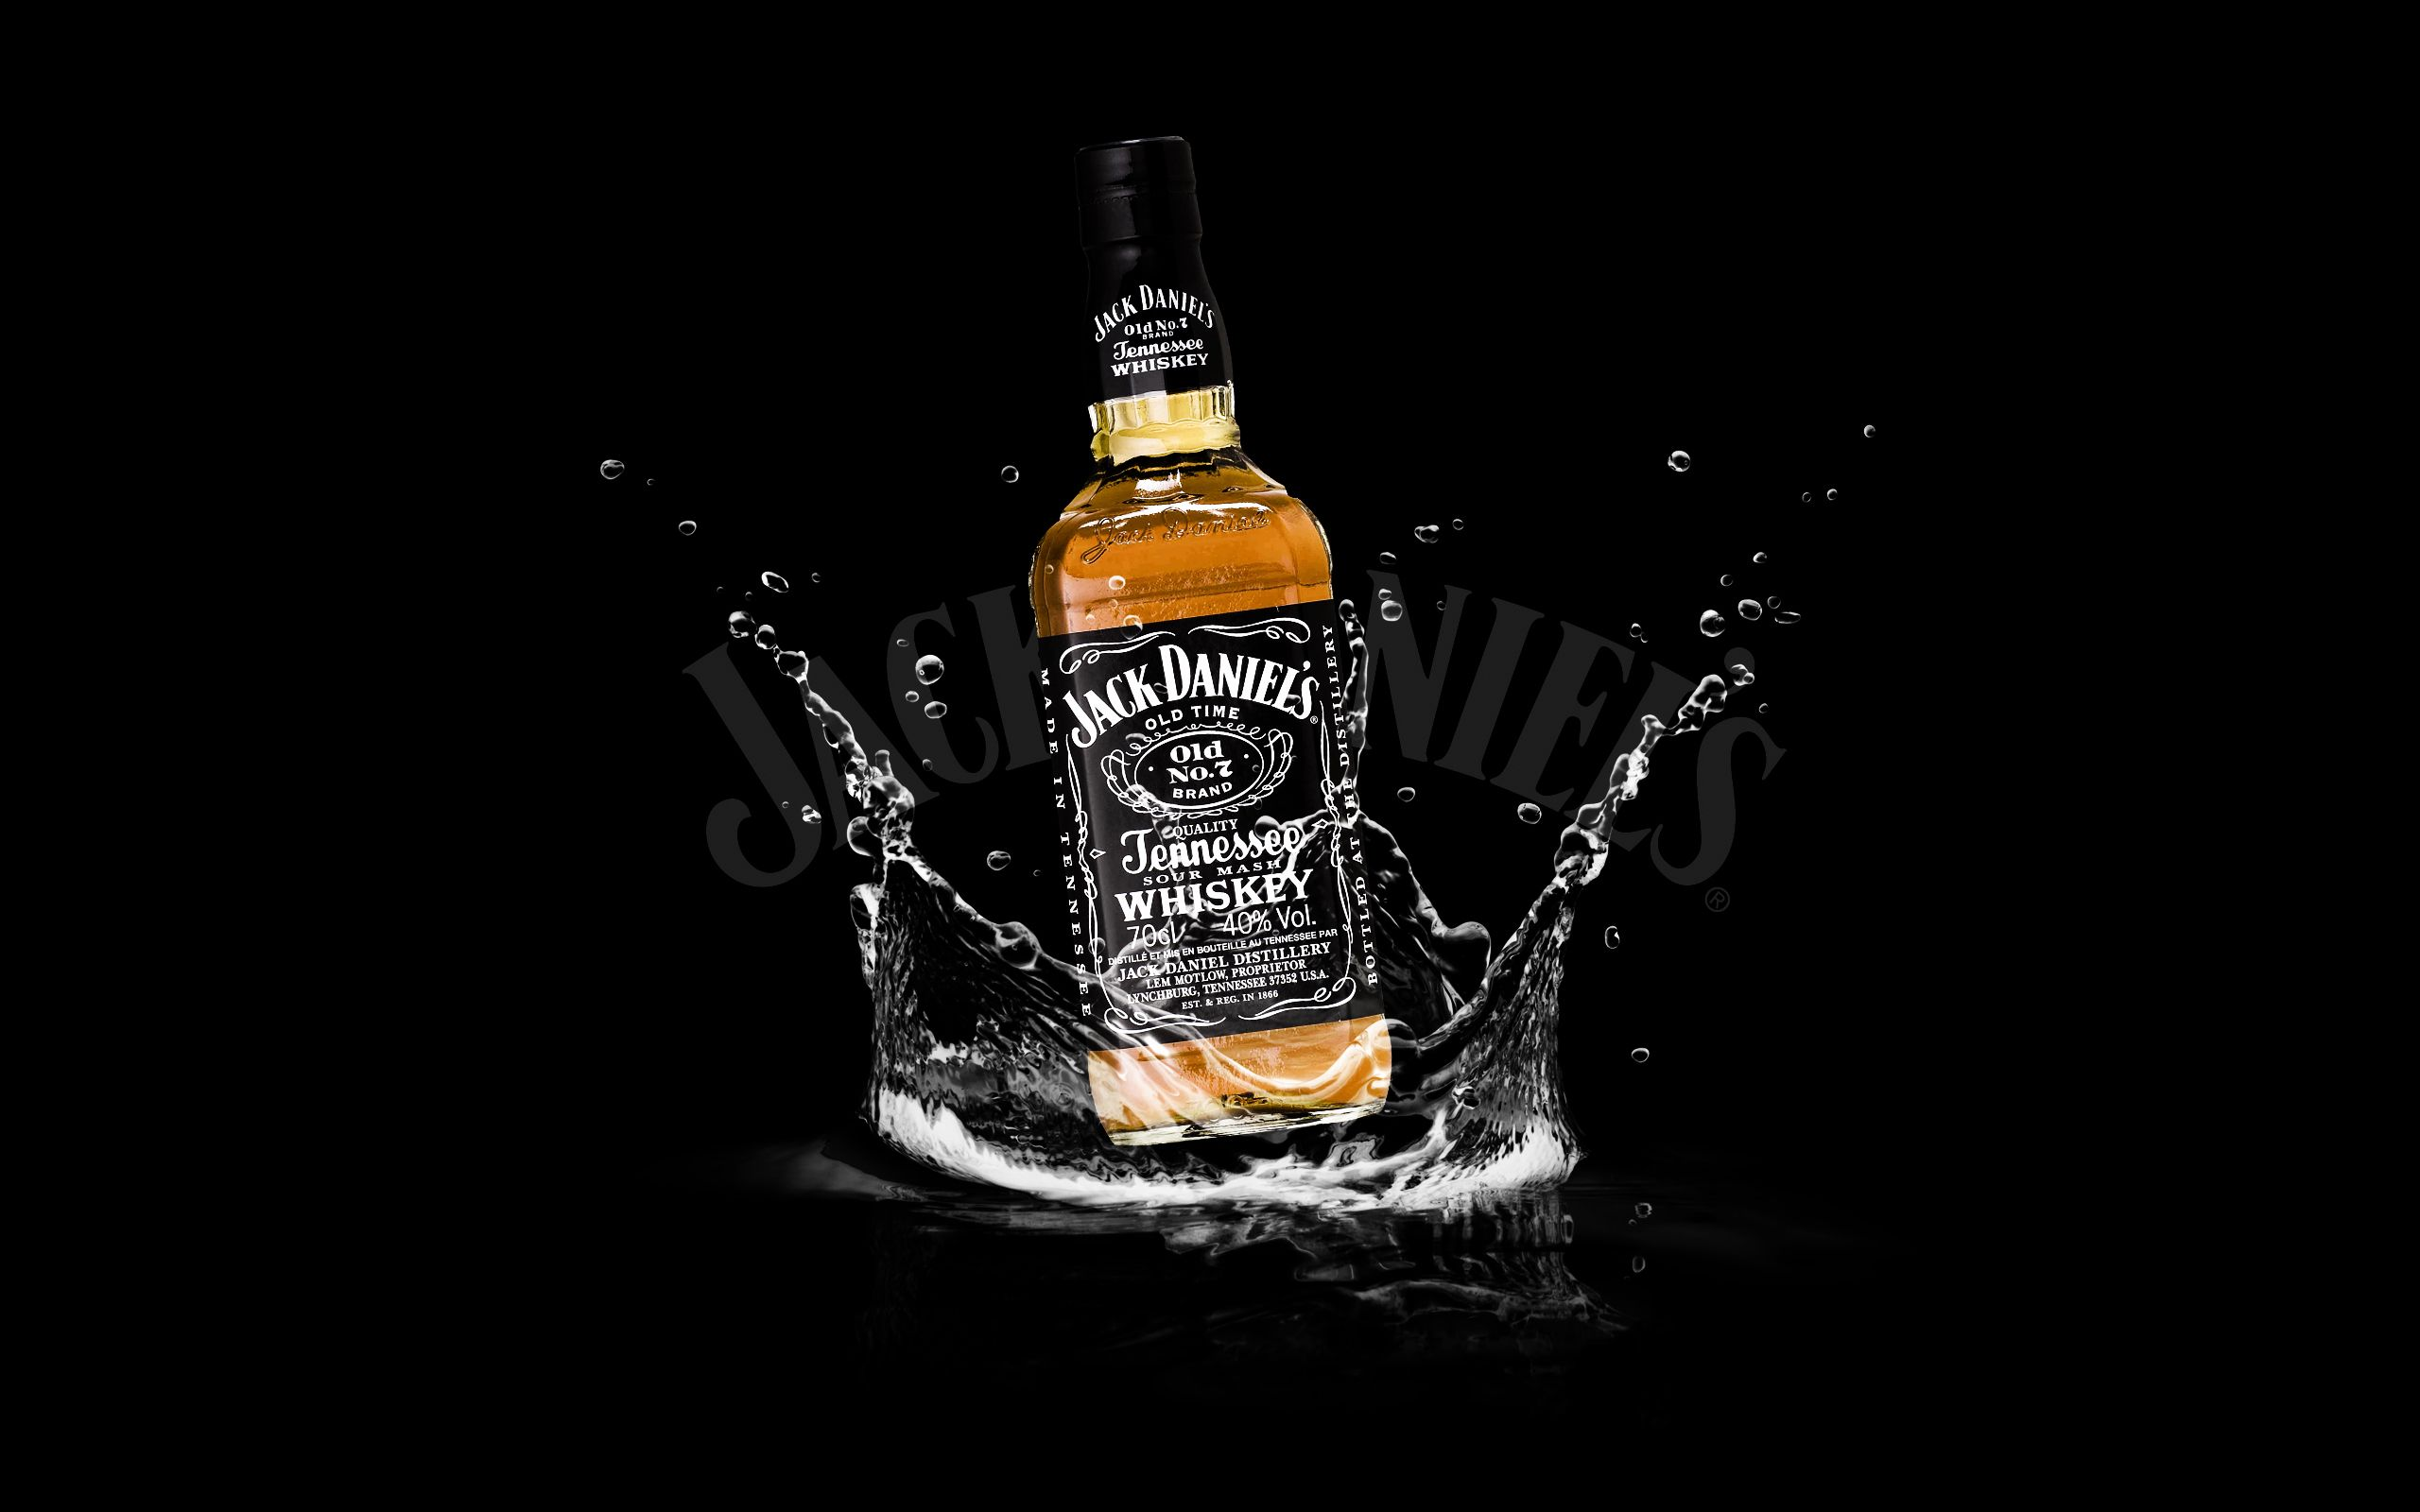 Awesome jack daniels water black background hd wallpaper places jack daniels on water widescreen wallpaper hd desktop background pc top picture voltagebd